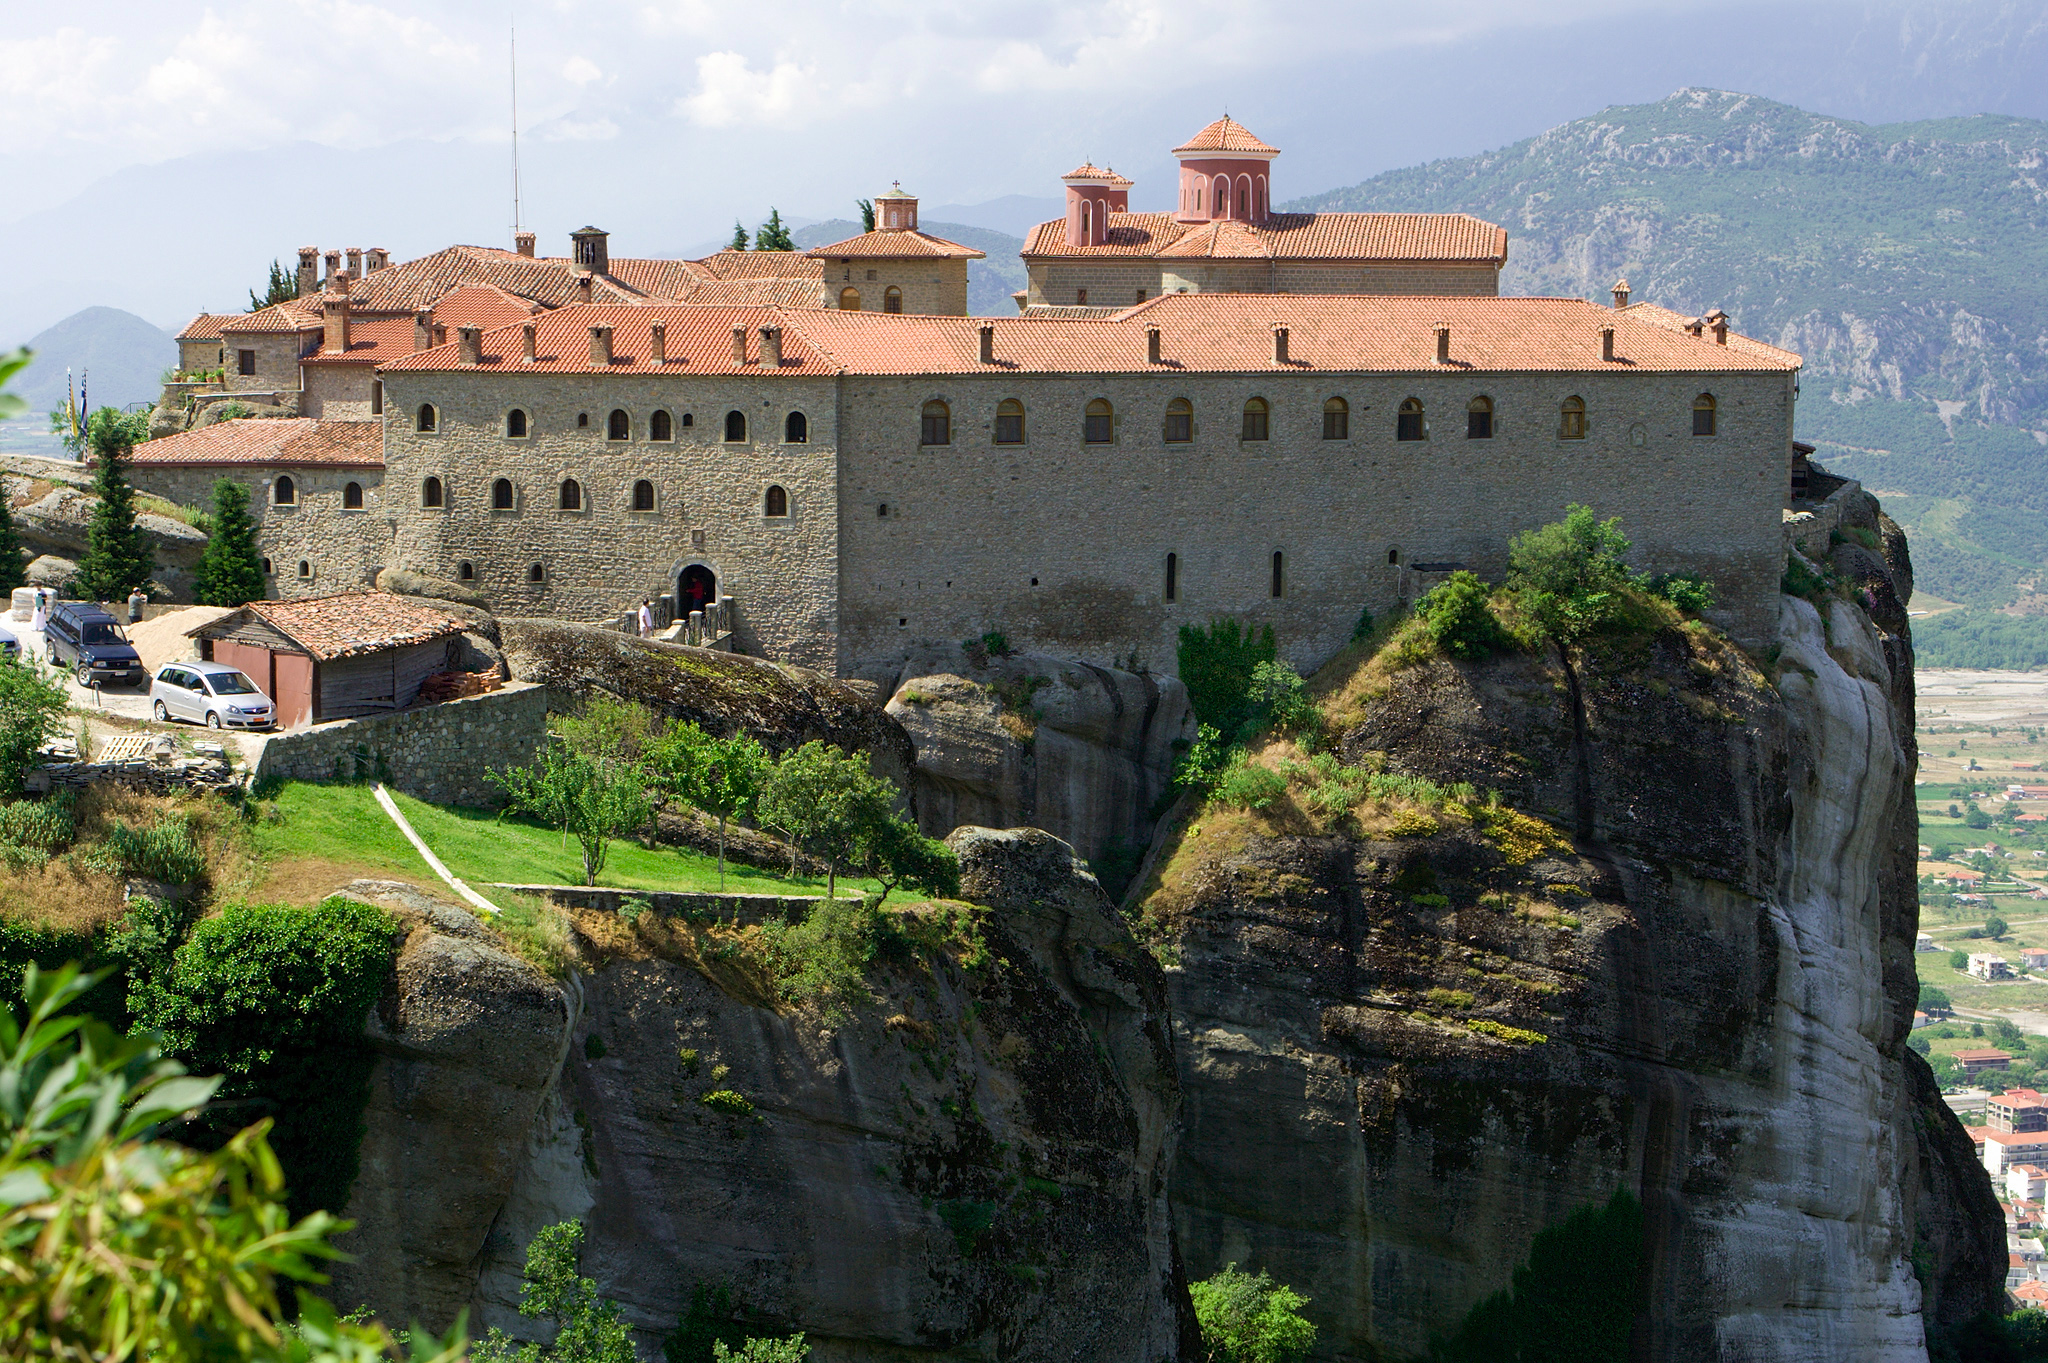 http://dic.academic.ru/pictures/wiki/files/77/Meteora_Agio_Stefano_IMG_7713.jpg